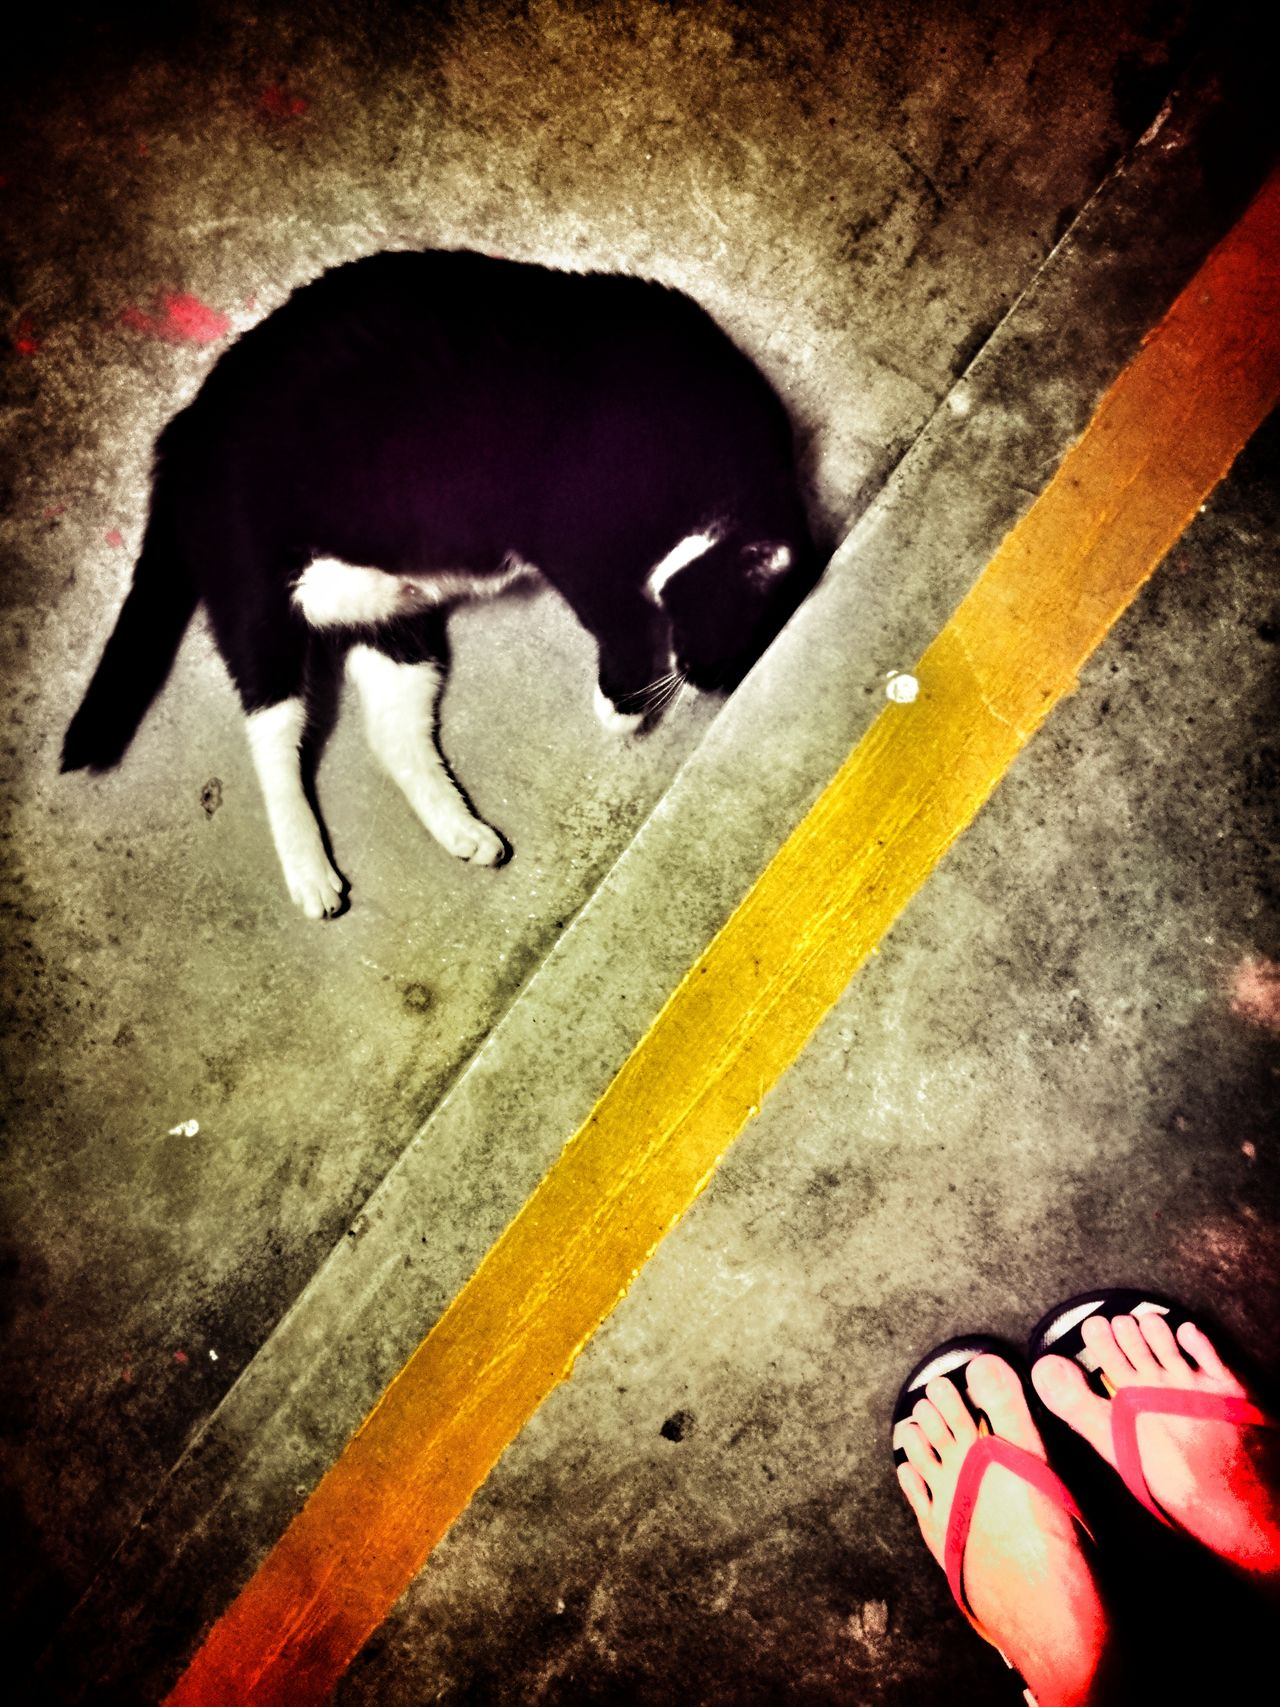 She always sent me back to home.Domestic Animals One Animal Yellow Pets Animal Themes Mammal Night Outdoor Photography Outdoors Homelessness  Homeless Kitten Homelessness  Homeless Homelessness  Homeless Cats Hua Wei P9 Plus Homelessness  Homeless Cat Animal Cat Homelessness  Homeless Animal Huaweiphotography Huawei P9 Plus HuaweiP9